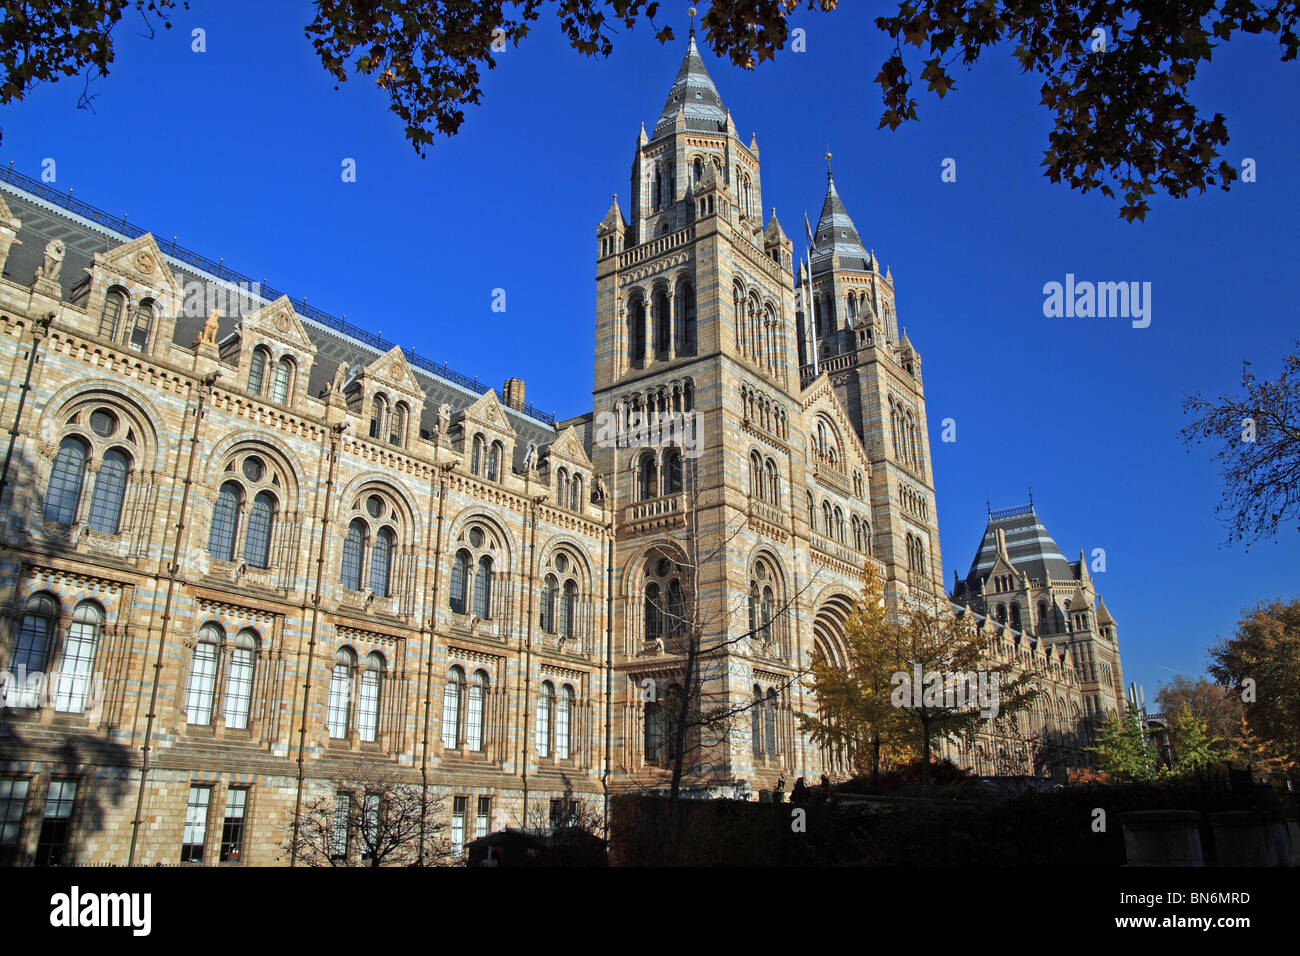 The Natural History Museum Kensington London England